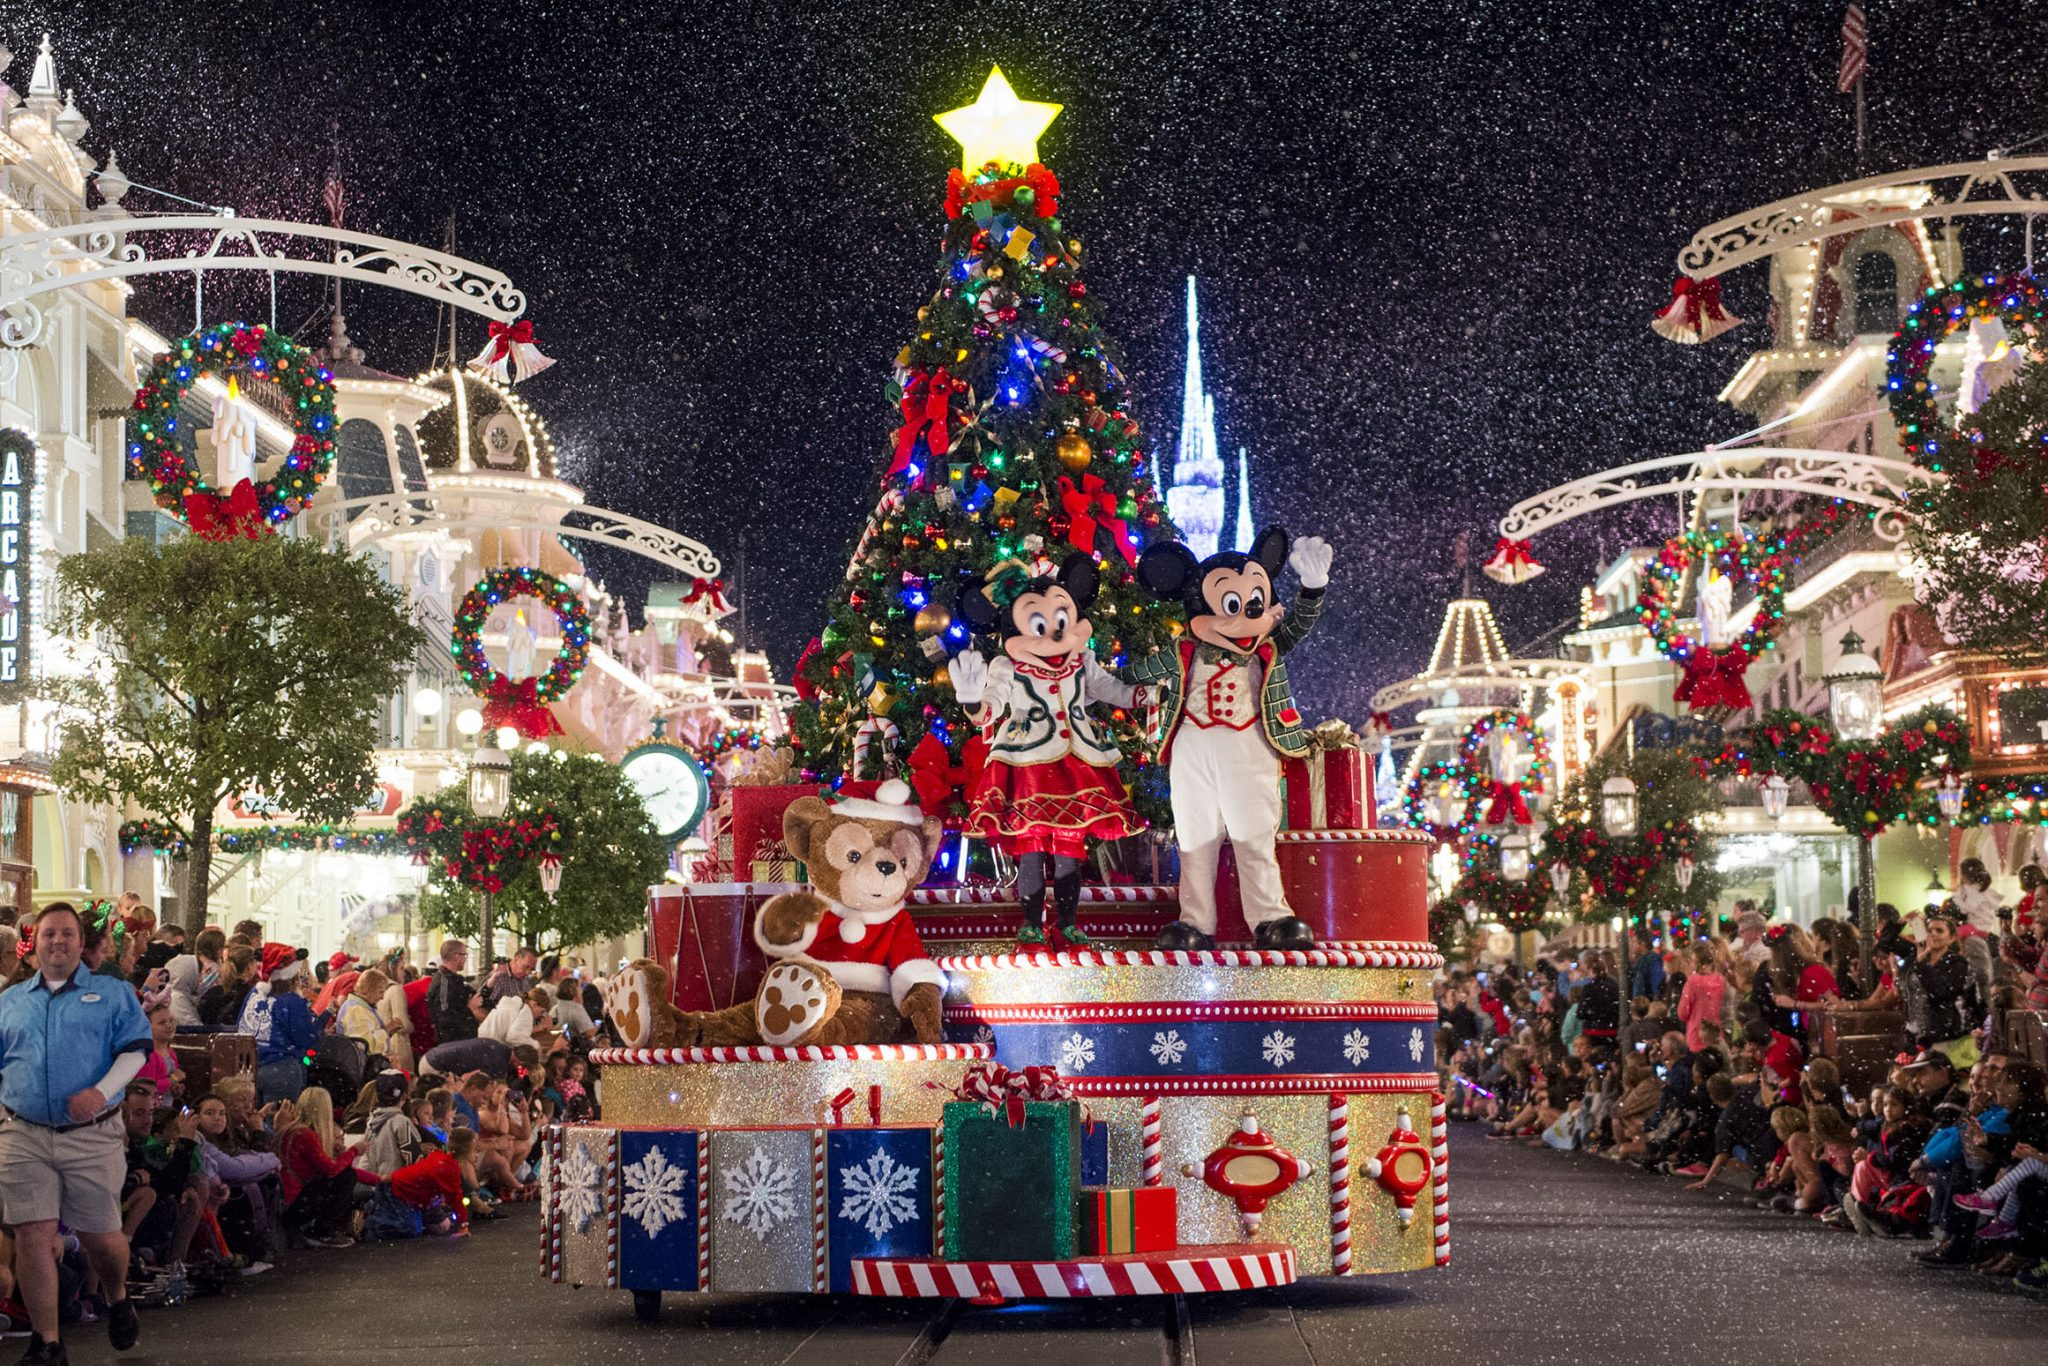 "Mickey Mouse, Minnie Mouse and Duffy wave to Magic Kingdom guests as snow falls on Main Street, U.S.A., during "" Mickey's Once Upon a Christmastime Parade"" at Walt Disney World Resort. The festive processional is one of the happy highlights of Mickey's Very Merry Christmas Party, a night of holiday splendor with lively stage shows, a unique holiday parade, Holiday Wishes: Celebrate the Spirit of the Season nighttime fireworks, and snow flurries on Main Street, U.S.A. The special-ticket event takes place on select nights in November and December at Magic Kingdom in Lake Buena Vista, Fla. (Ryan Wendler, photographer)"